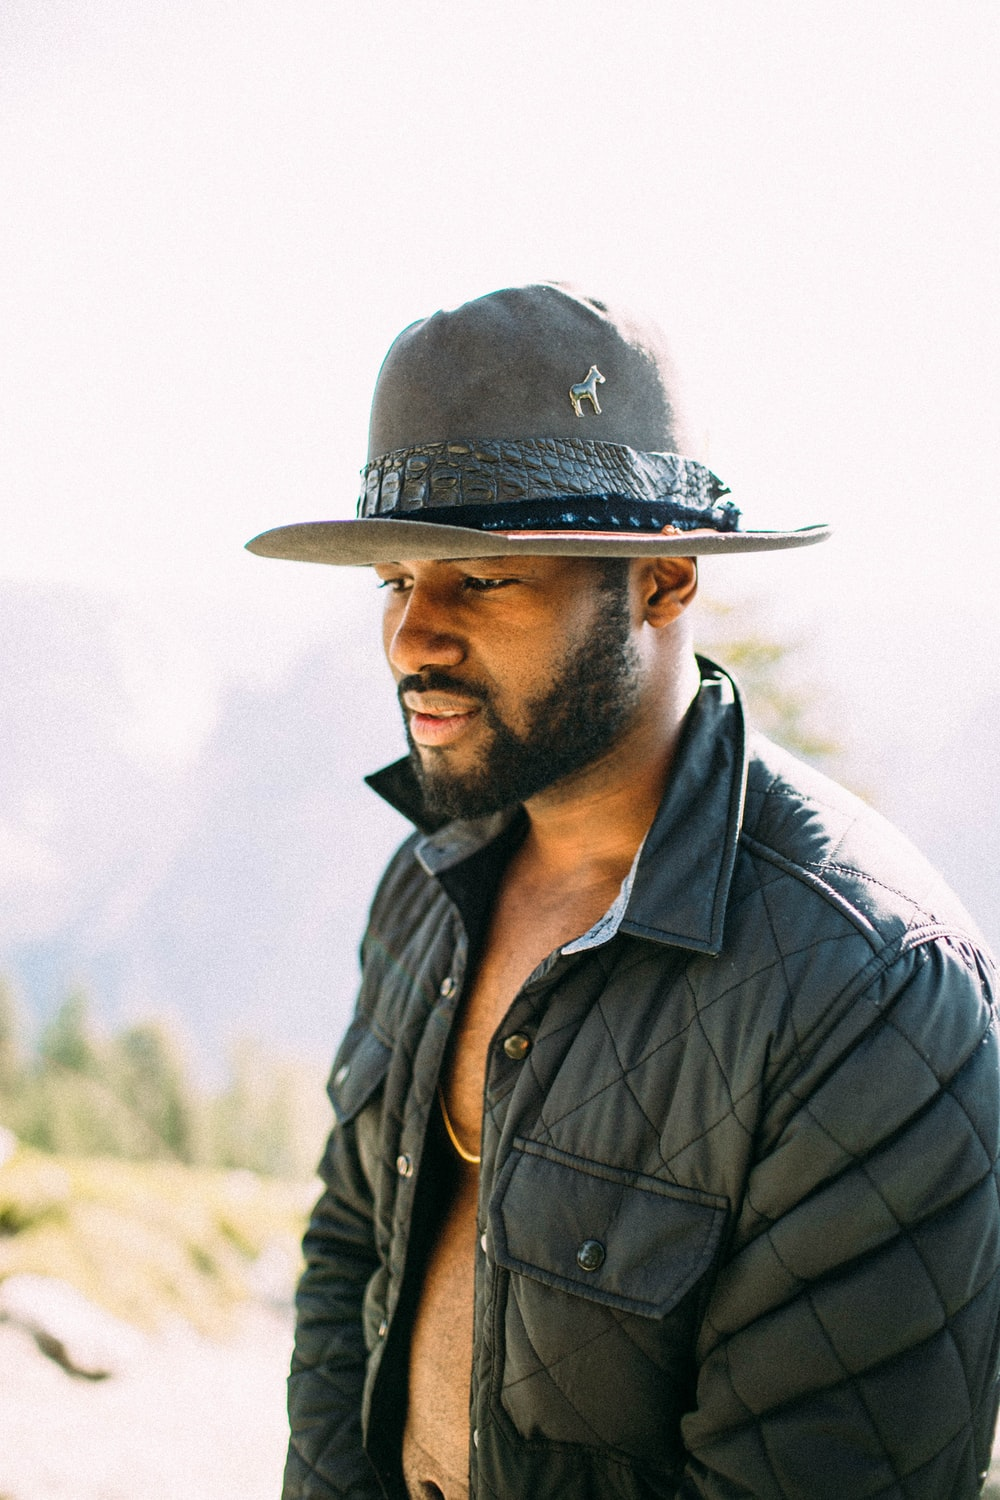 man wearing cowboy hat and buffer jacket looking down outdoor